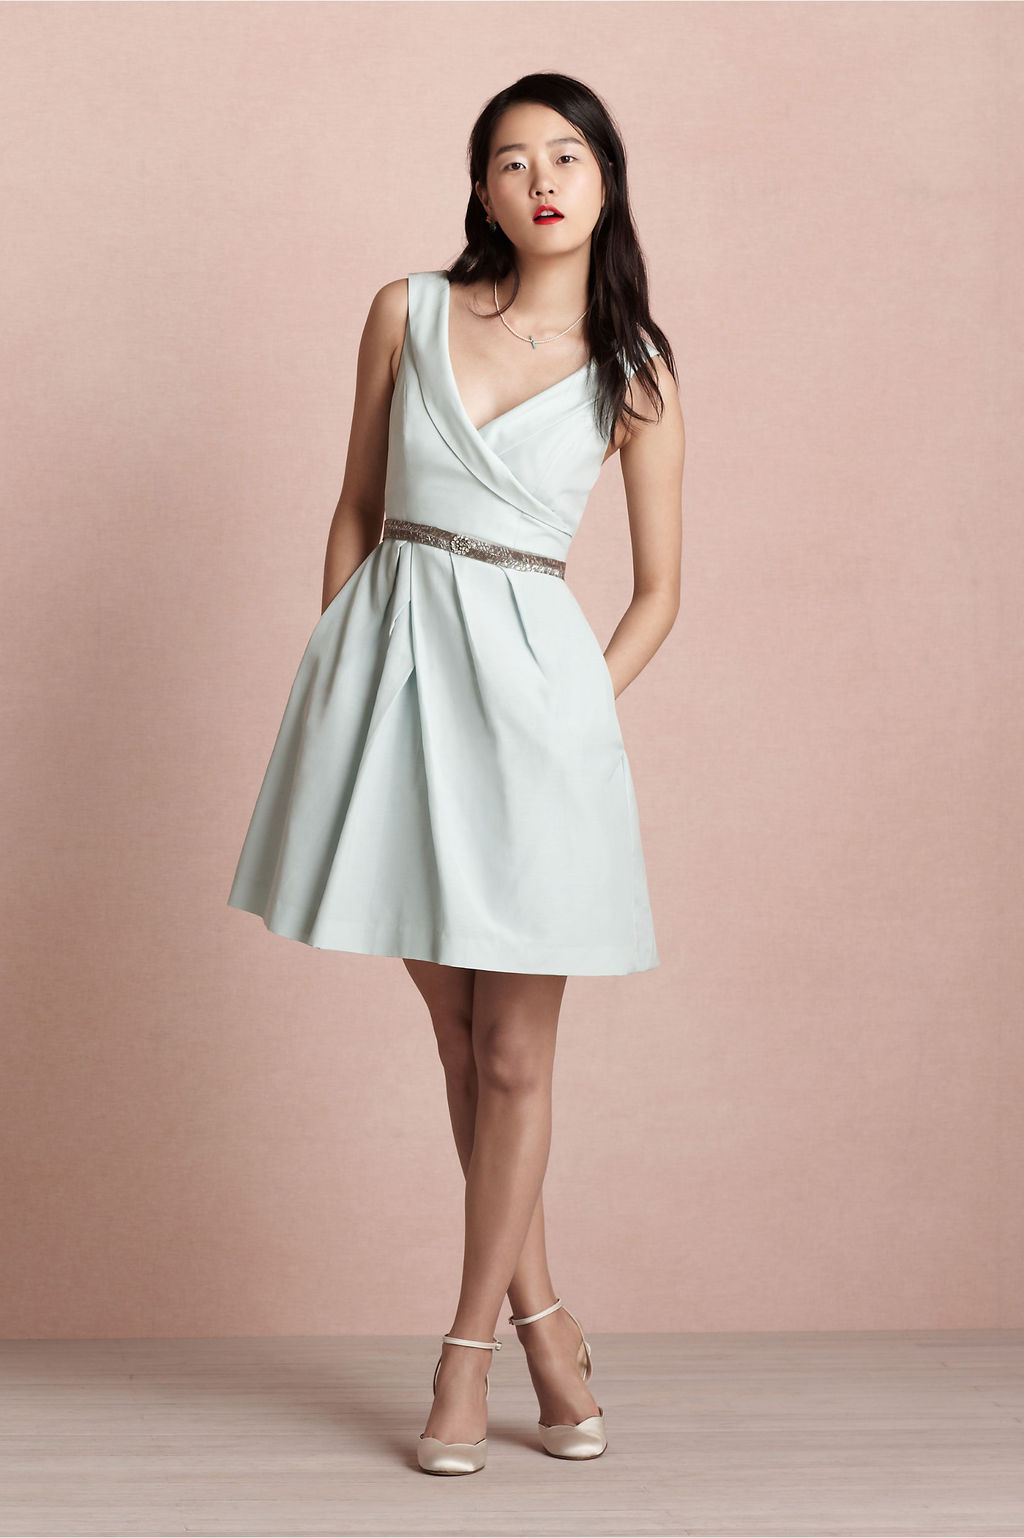 Covetable-bridesmaid-dresses-from-bhldn-2013-bridal-party-style-light-gray-belted.full